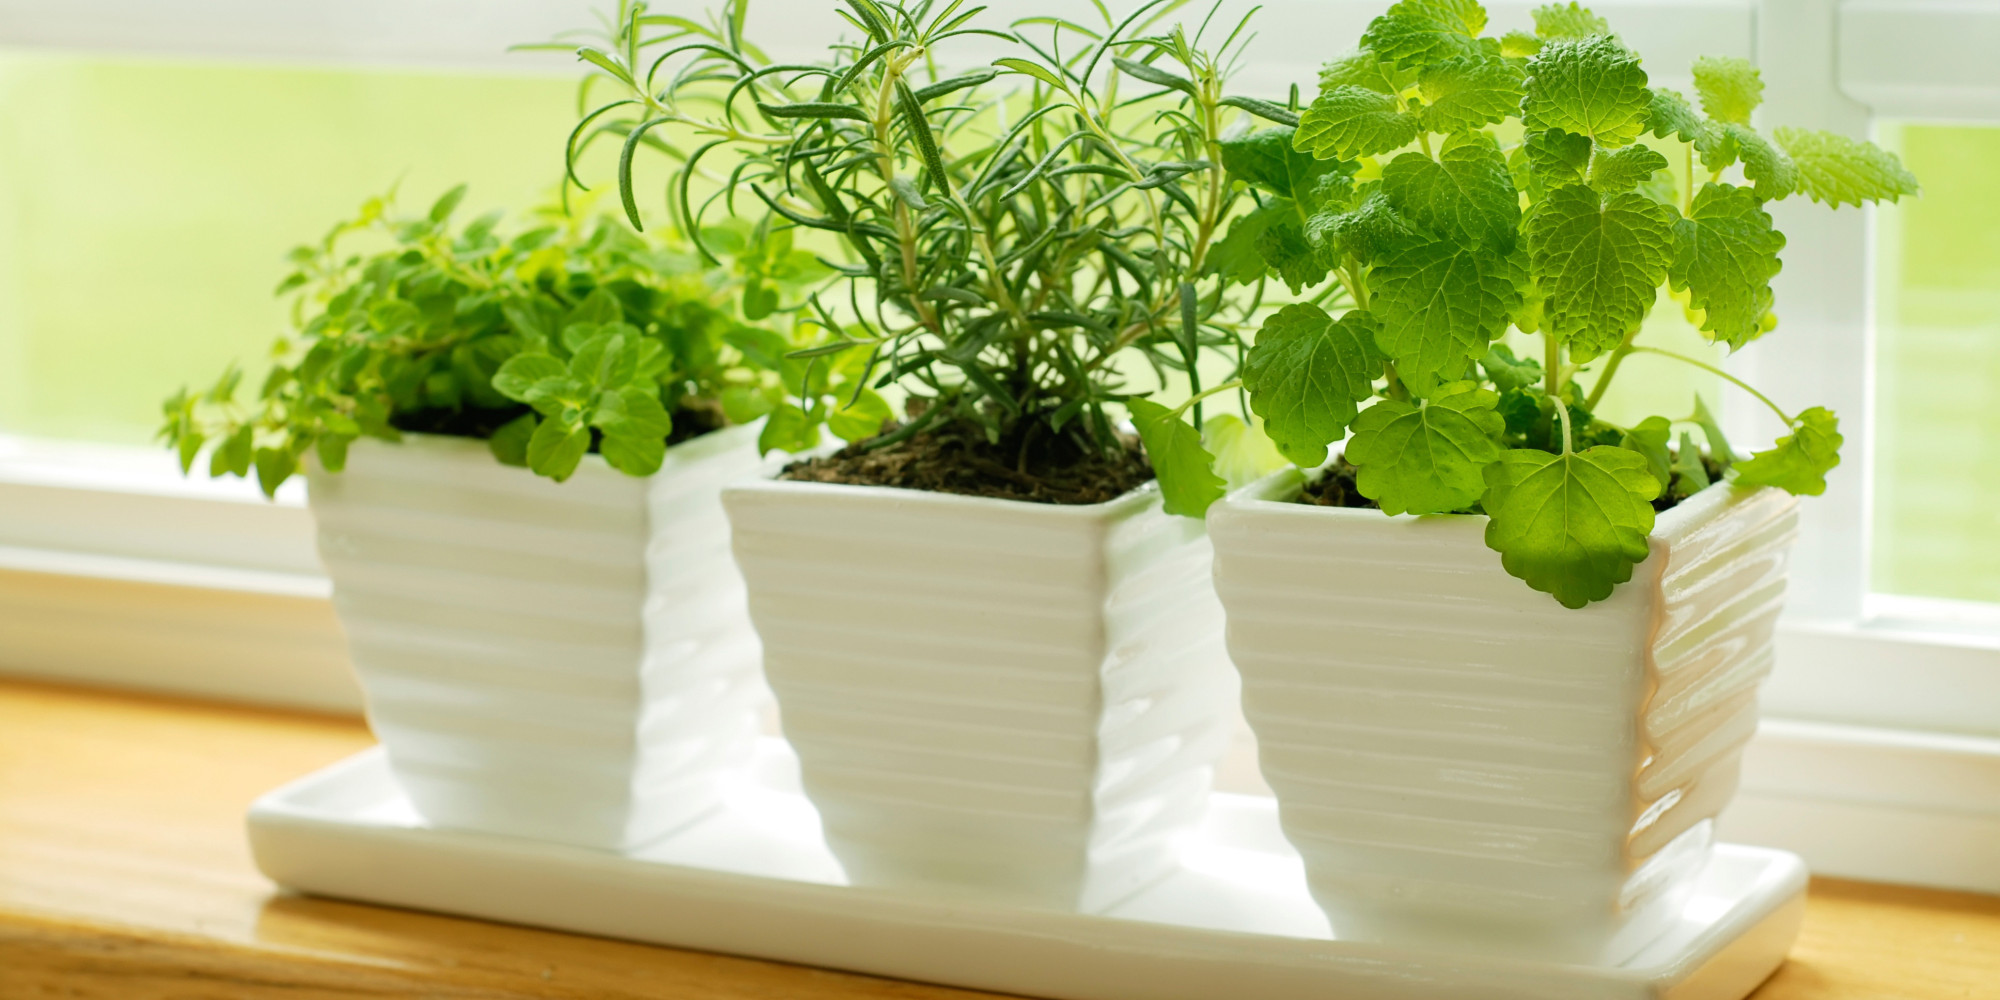 10 ways raising house plants and kids are similar | huffpost